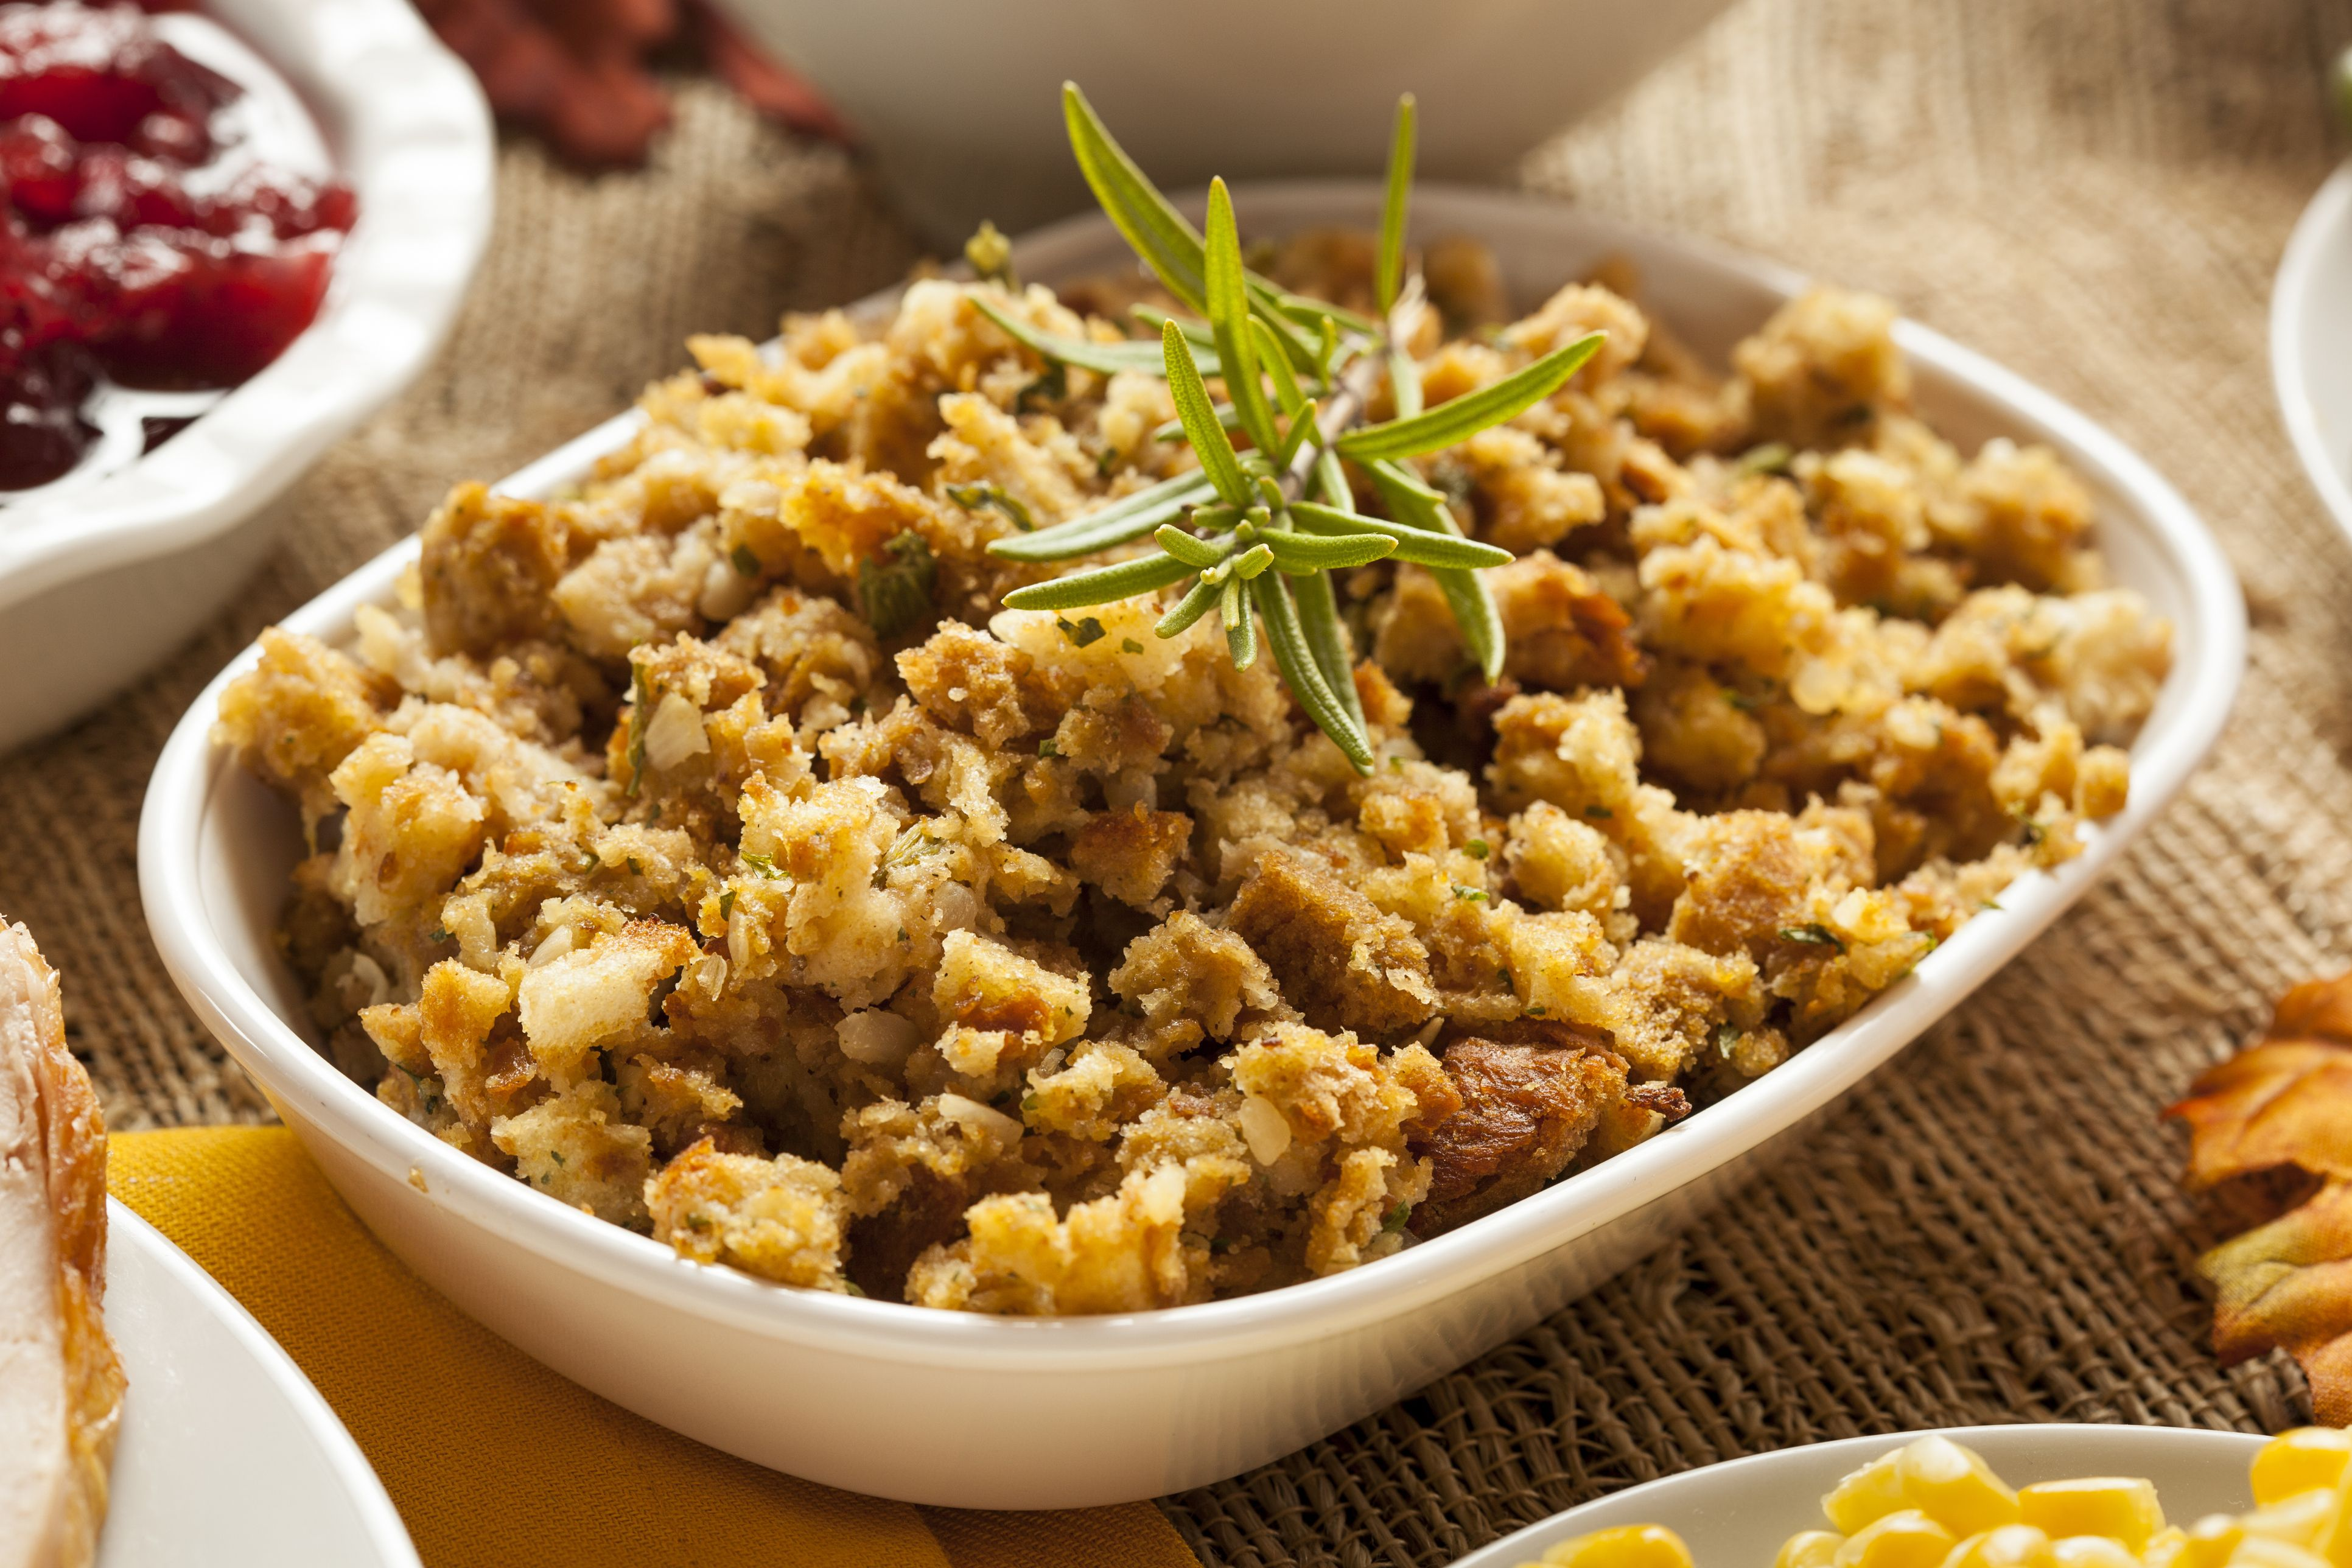 This Turkey Stuffing Recipe Will Be the MVP of Your Thanksgiving Dinner